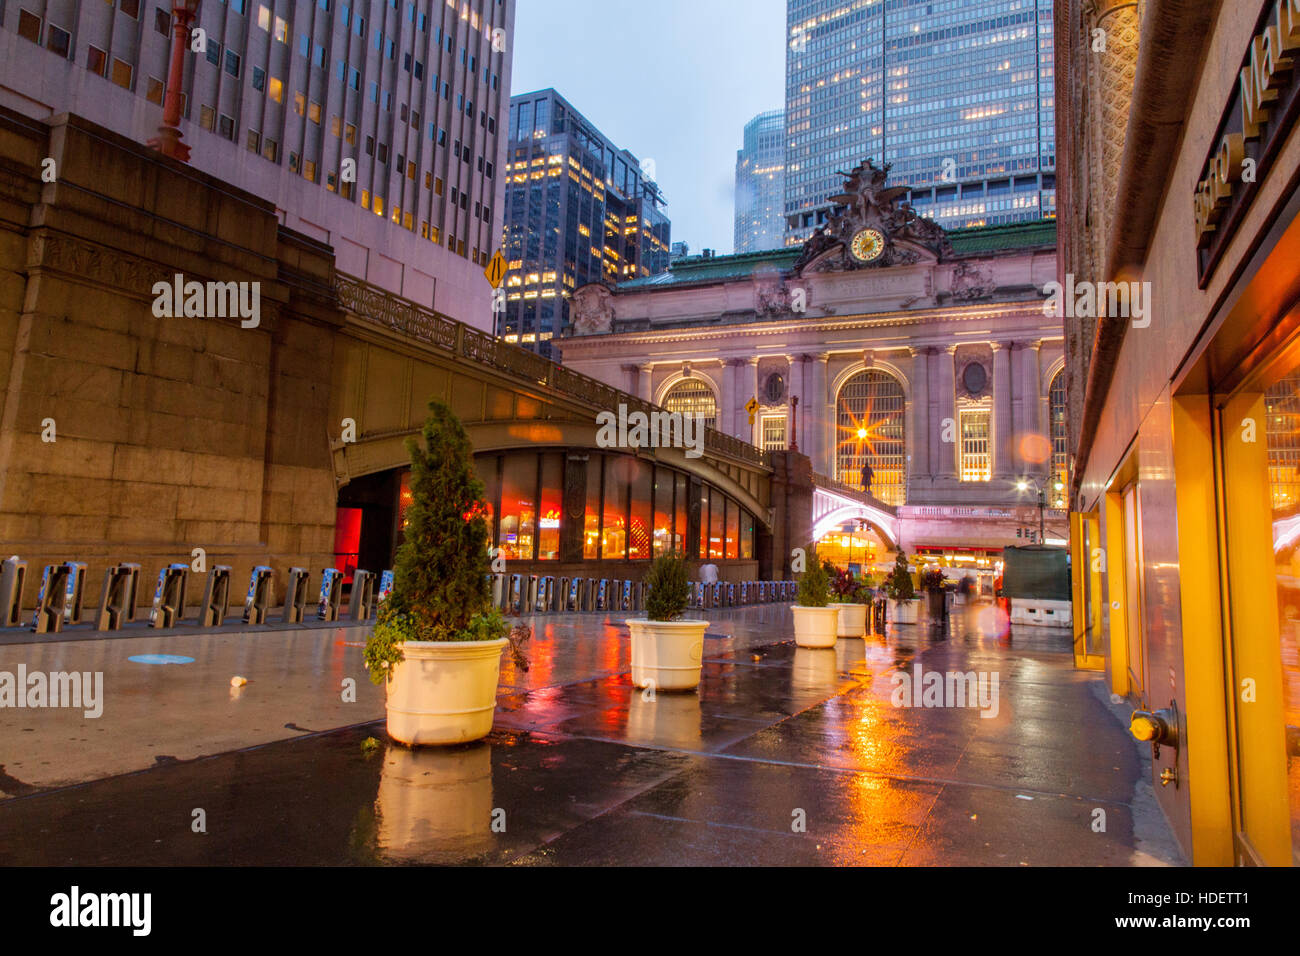 Grand central station exterior 42nd Street, Manhattan,New York City, United States of America. - Stock Image